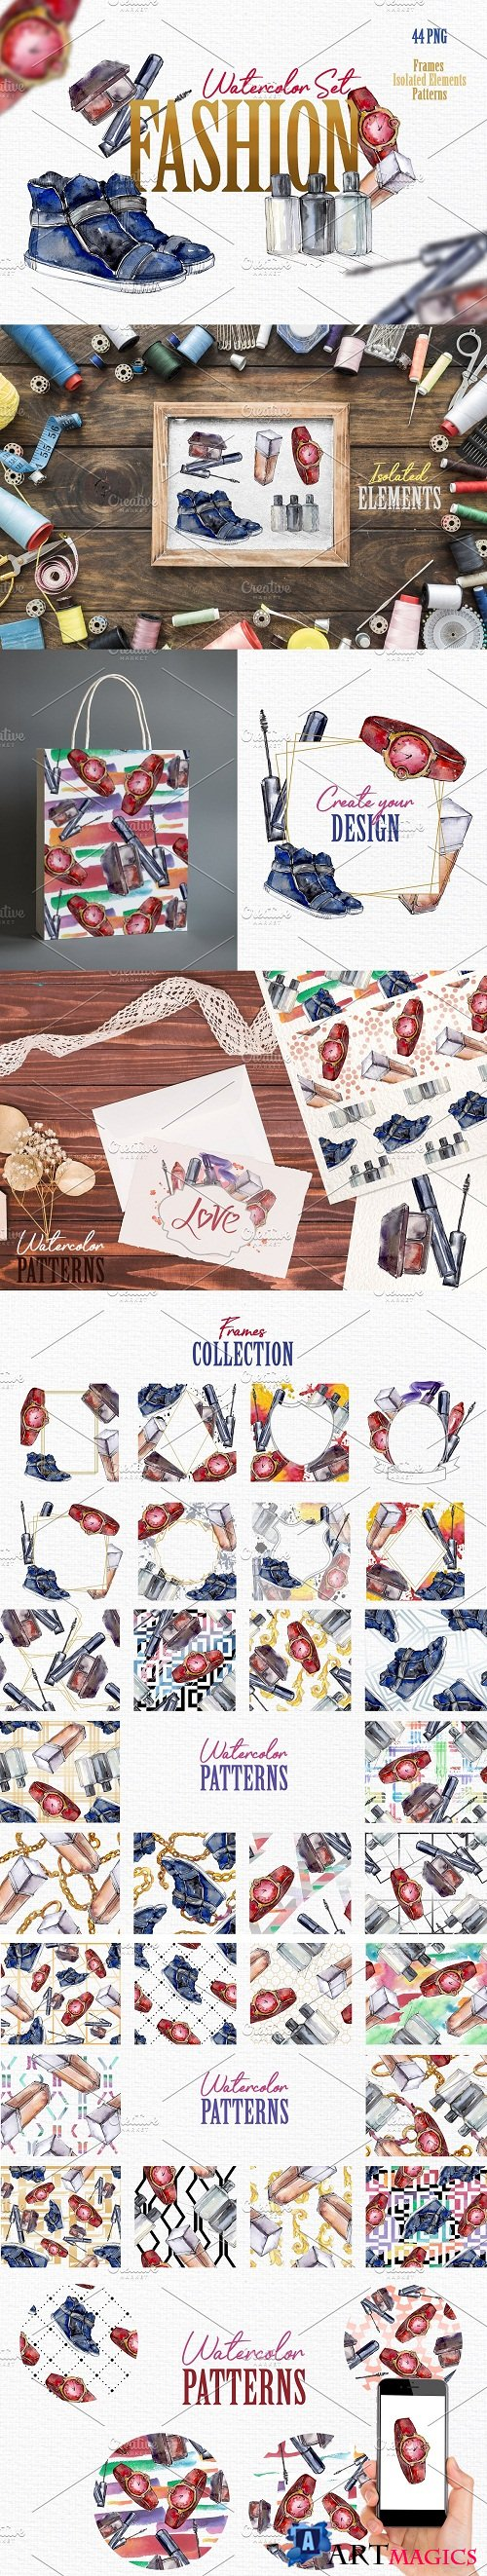 Fashion Watercolor png - 3738200